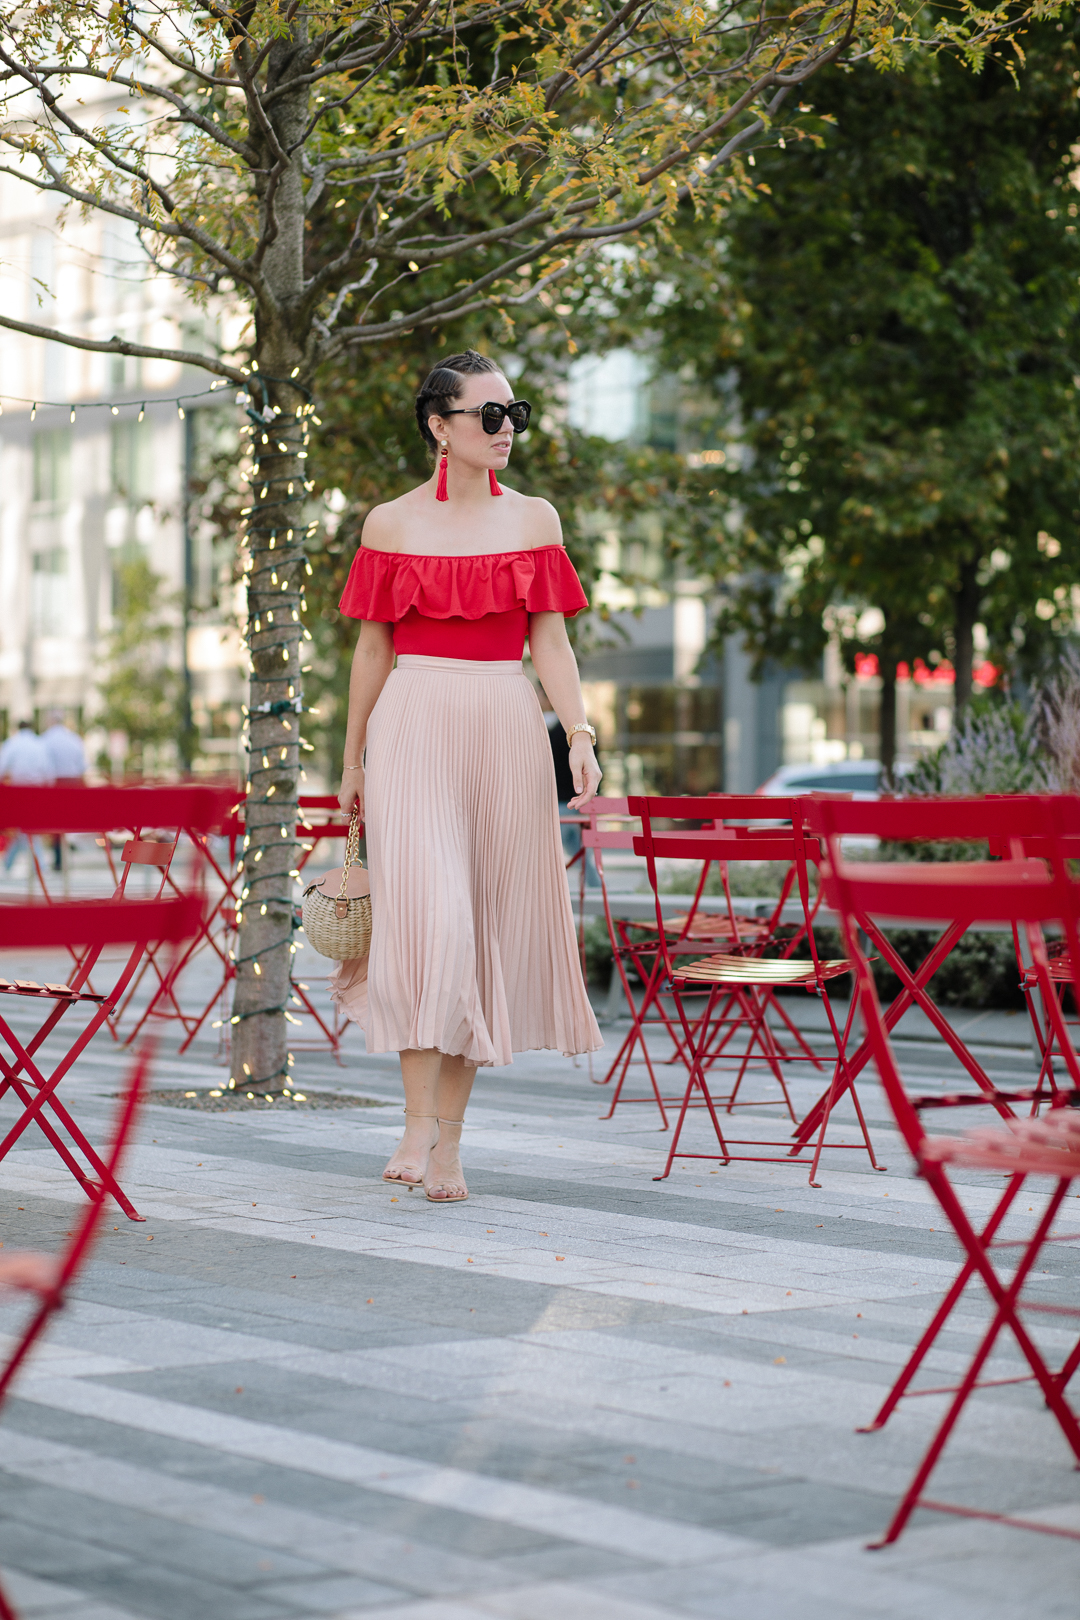 Wearing pink and red for a bold look